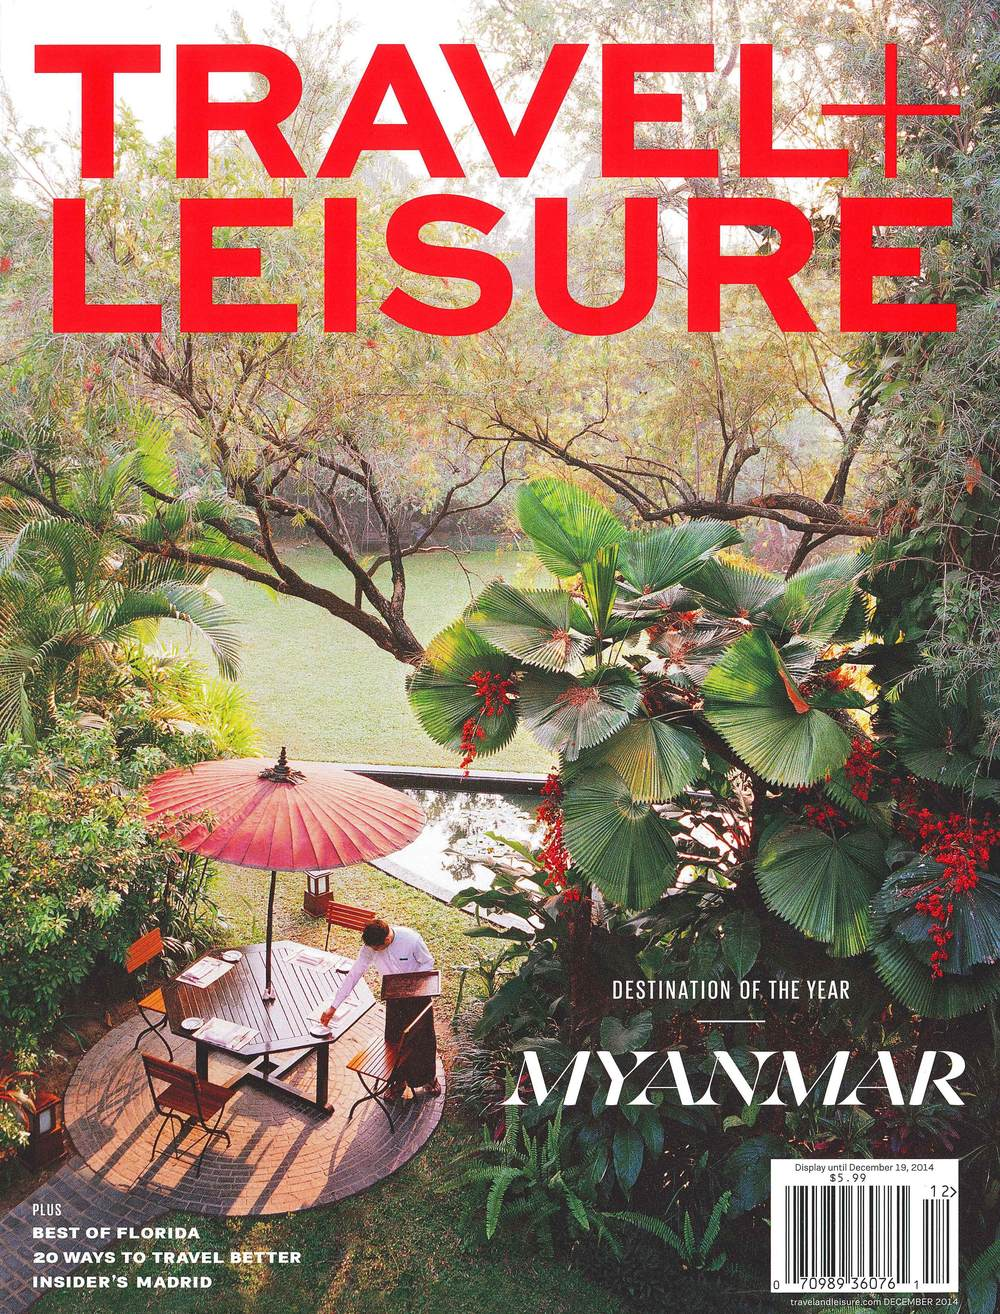 TRAVEL + LEISURE December 2014